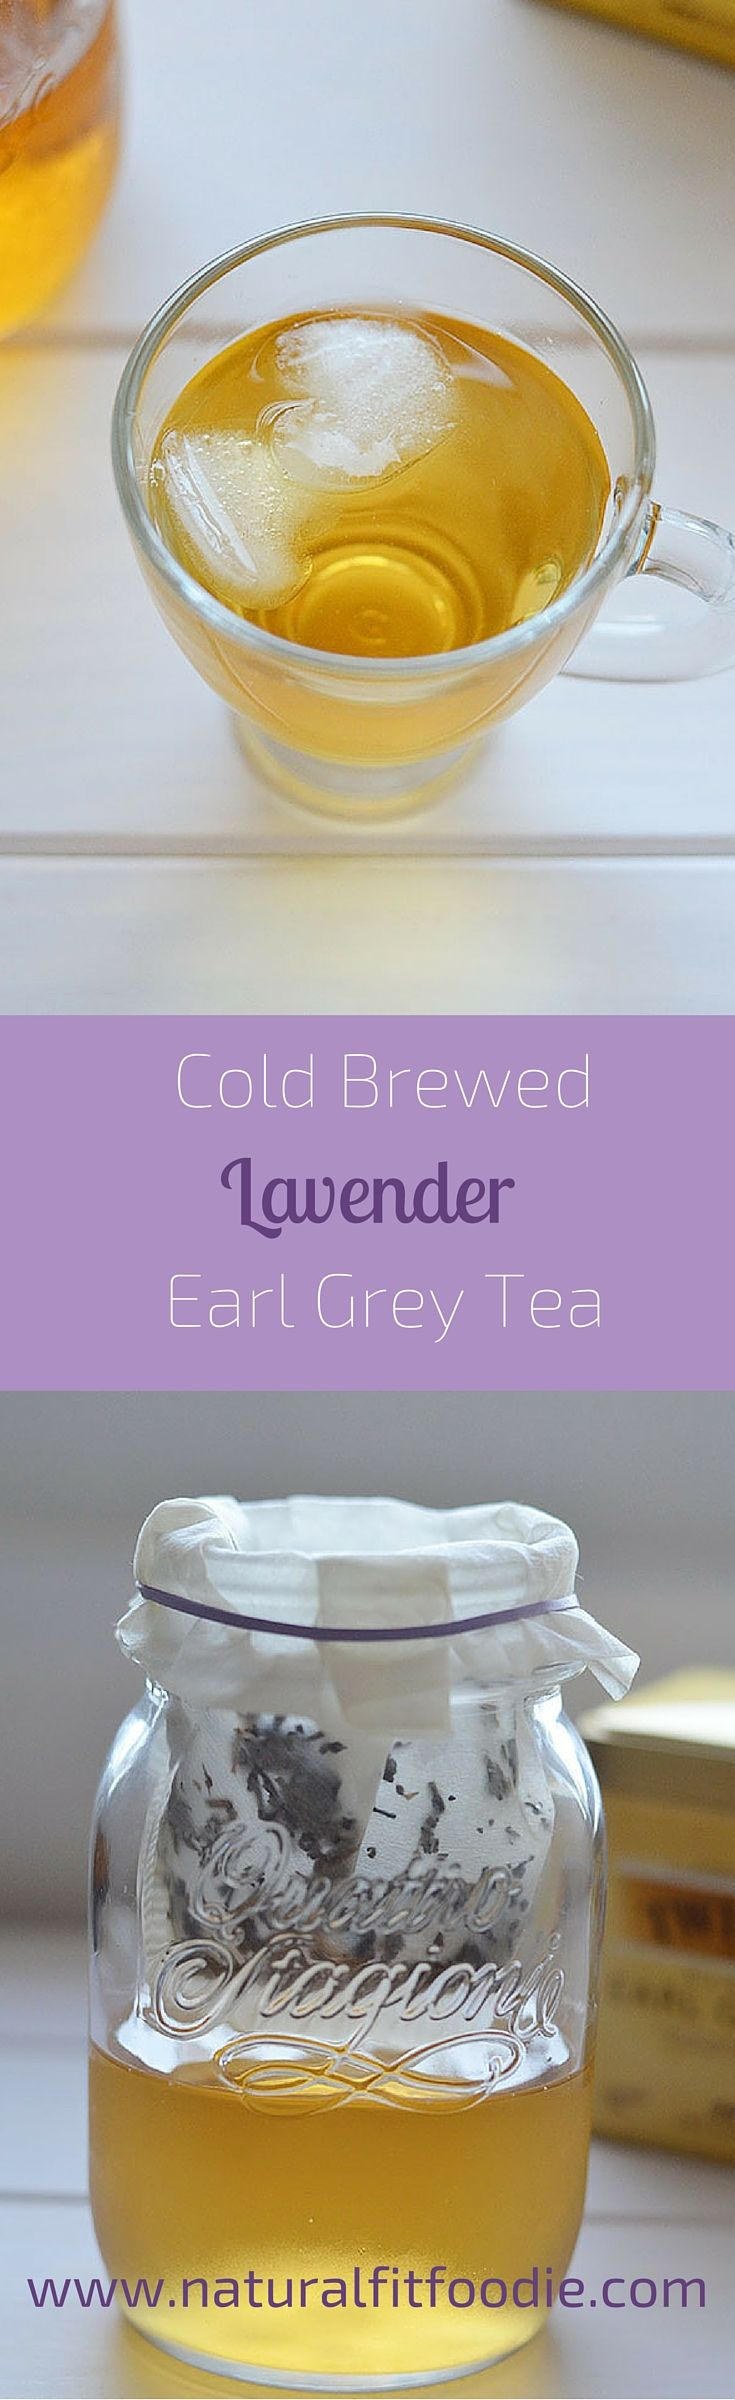 If you're looking for a low calorie drink with a little more oomph than plain water, definitely give this Cold Brewed Lavender Earl Grey tea a try!